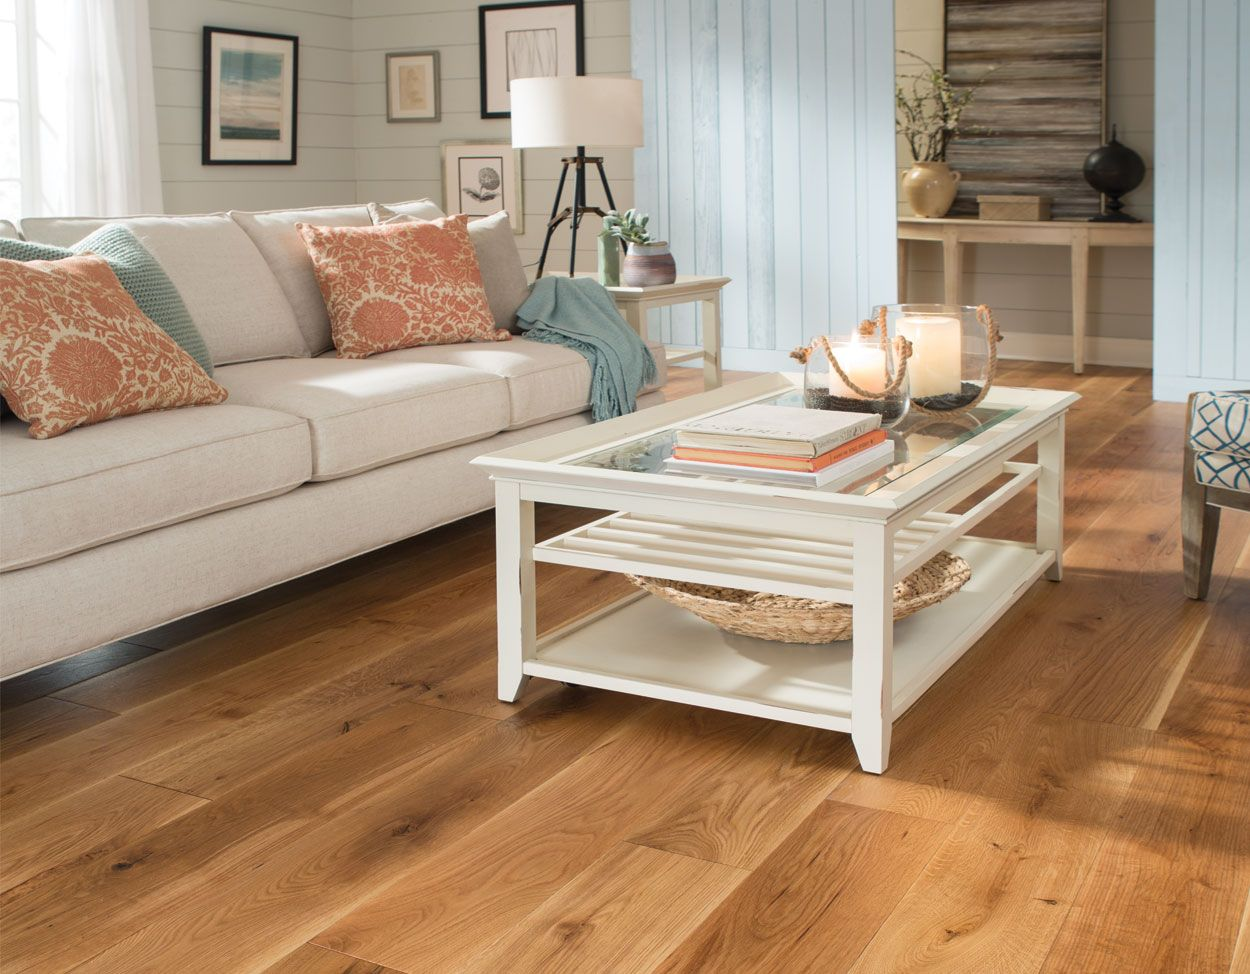 21485 Wexford Engineered White Oak Natural Oak Hardwood White Oak Hardwood Floors White Oak Floors #oak #floor #living #room